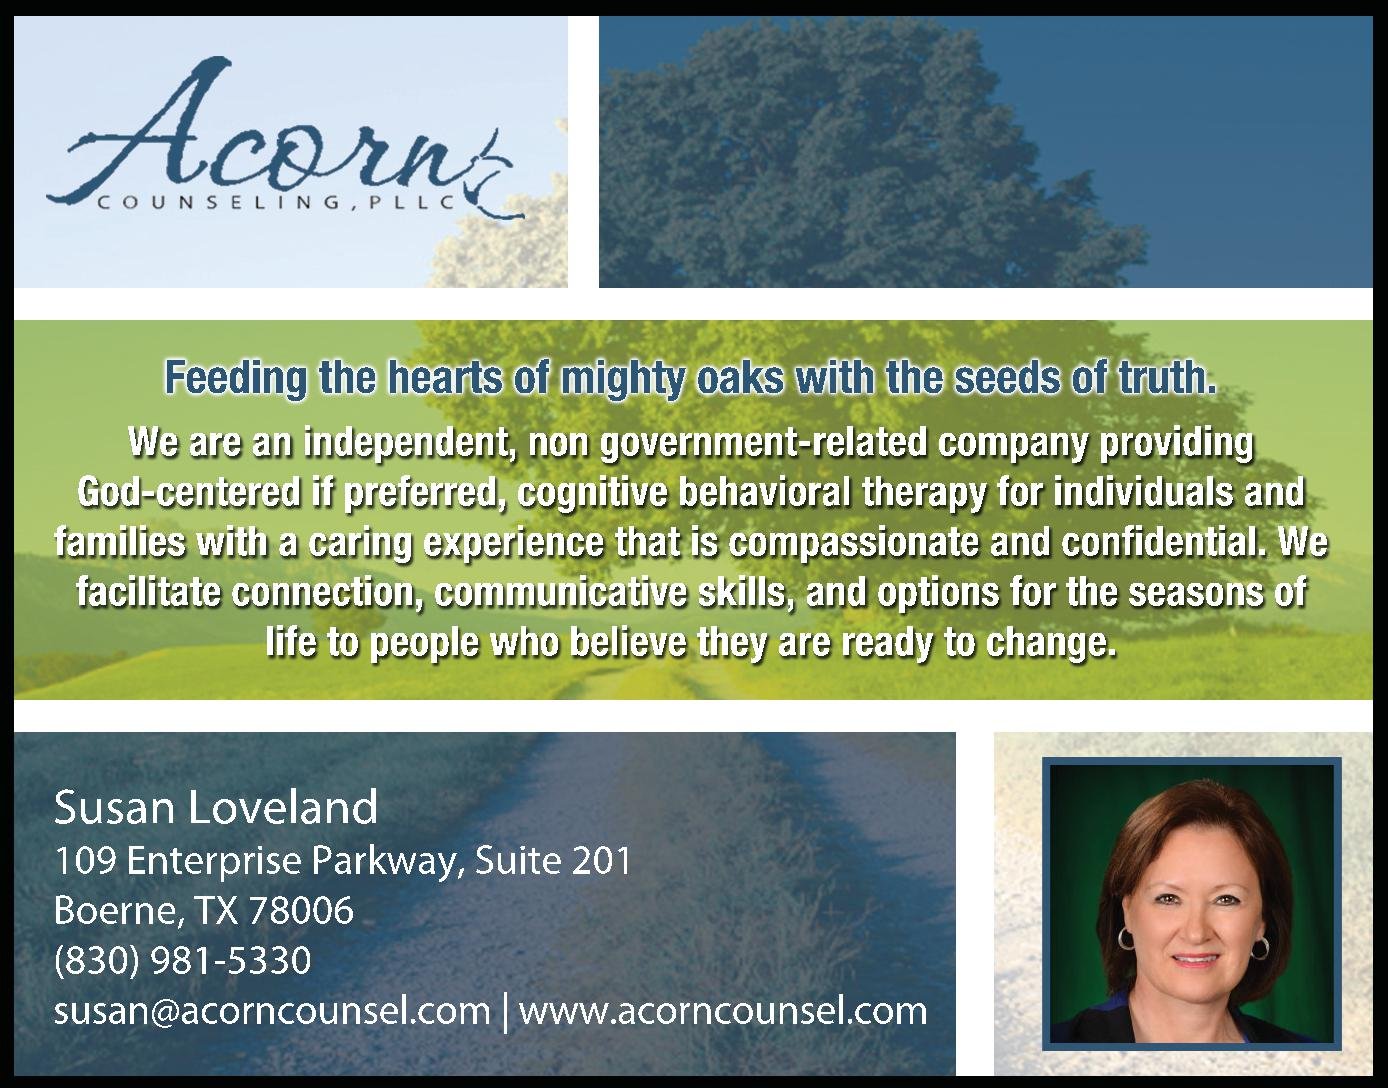 Acorn Counseling PLLC